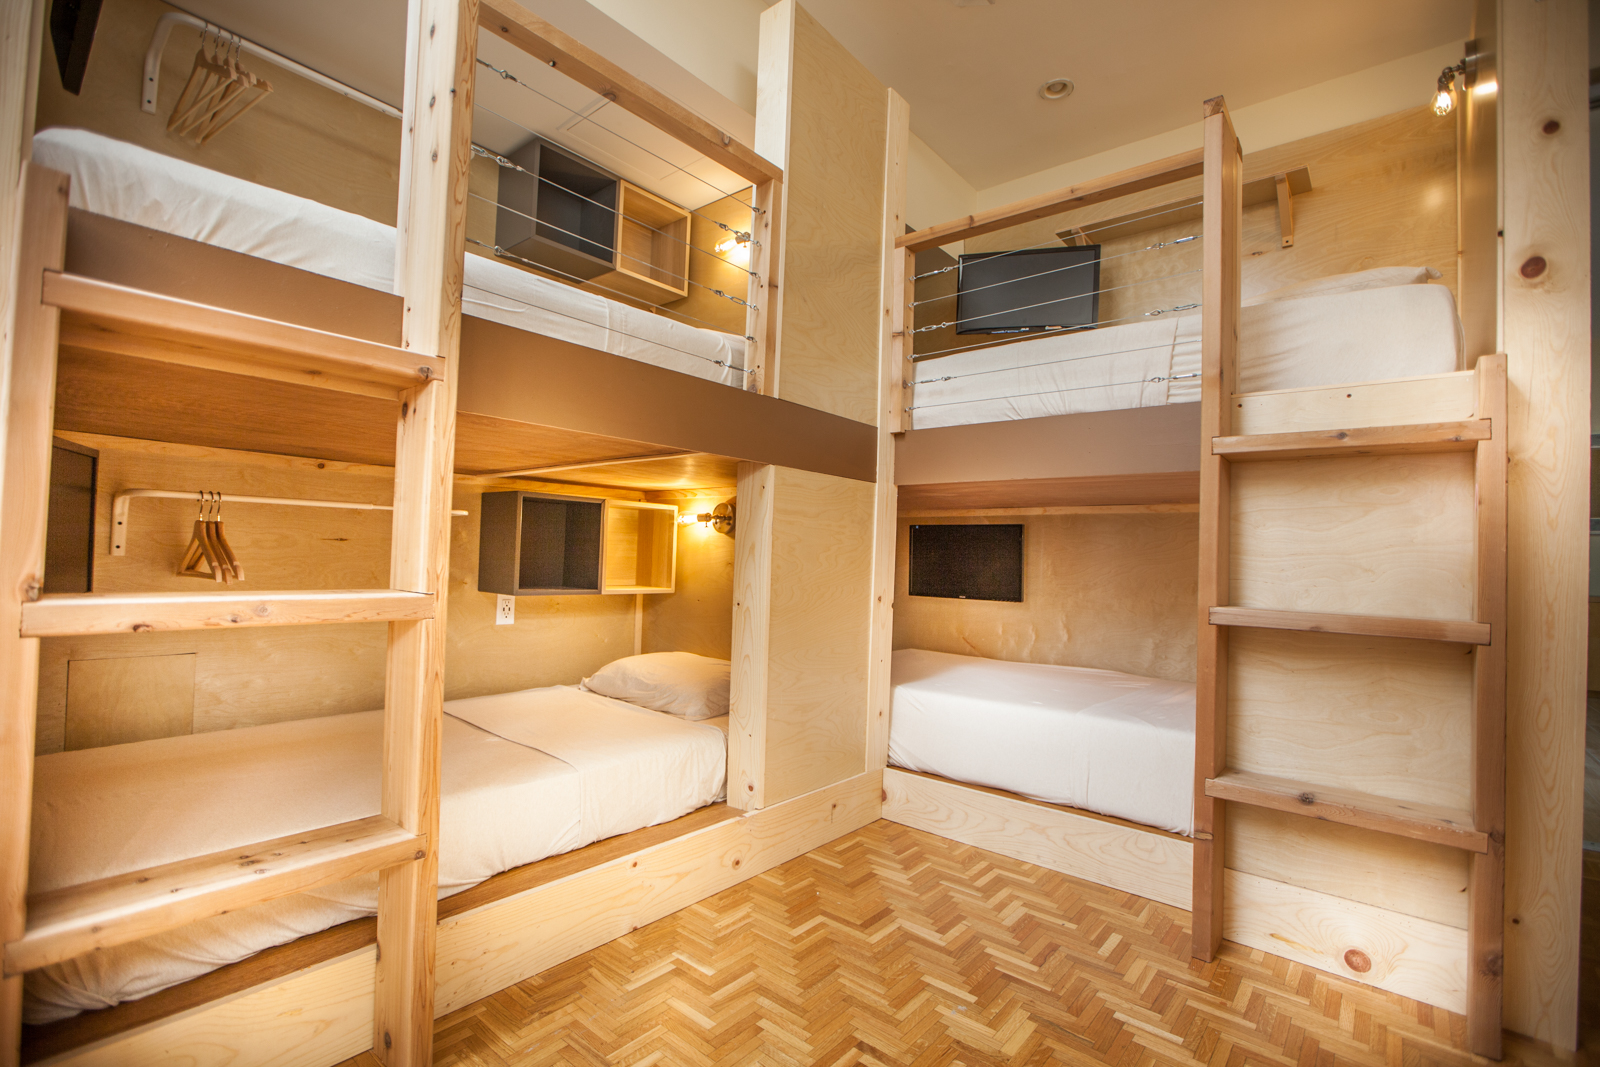 Bunk beds in a San Francisco building.